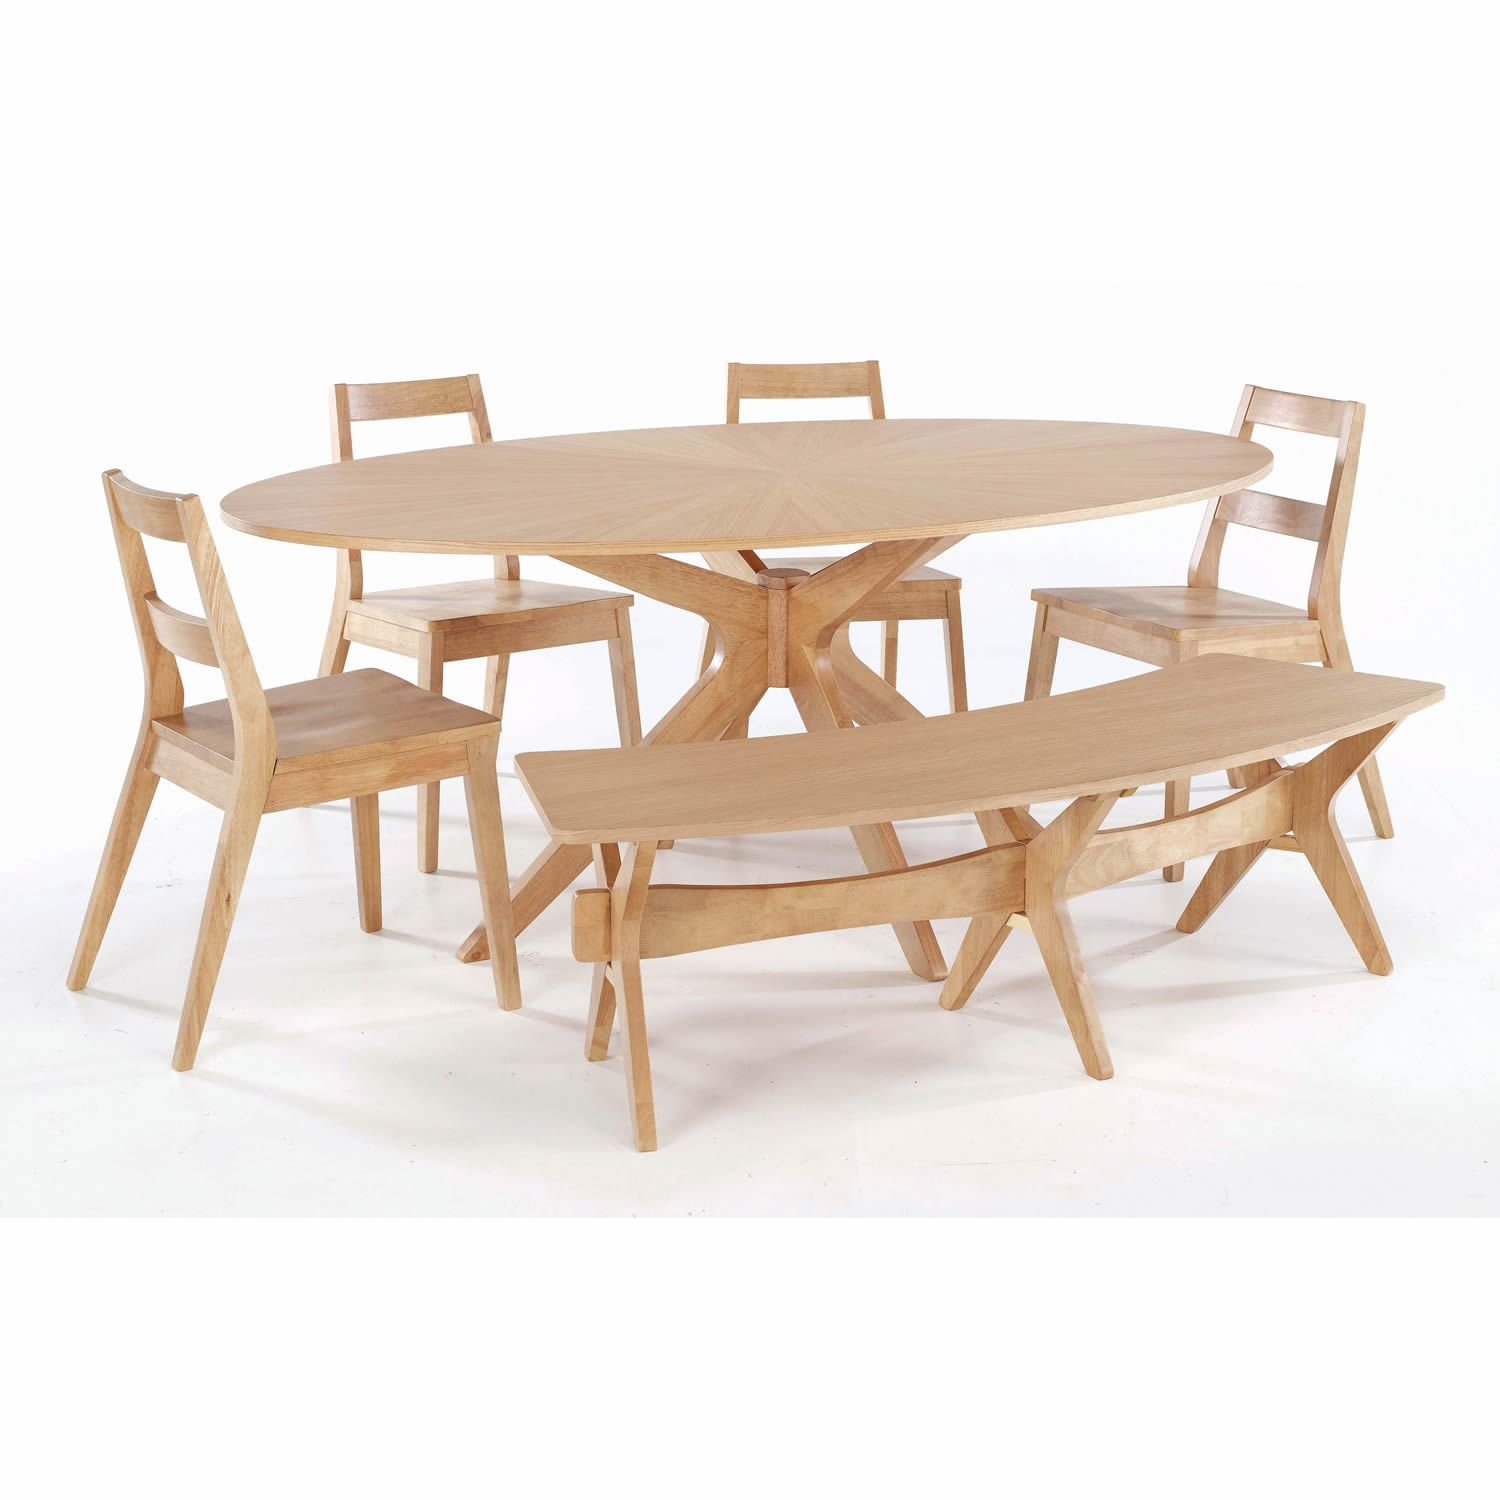 Spectacular Simplistic Oval Dining Table With Chairs And Bench Oak - Oval dining table for 4